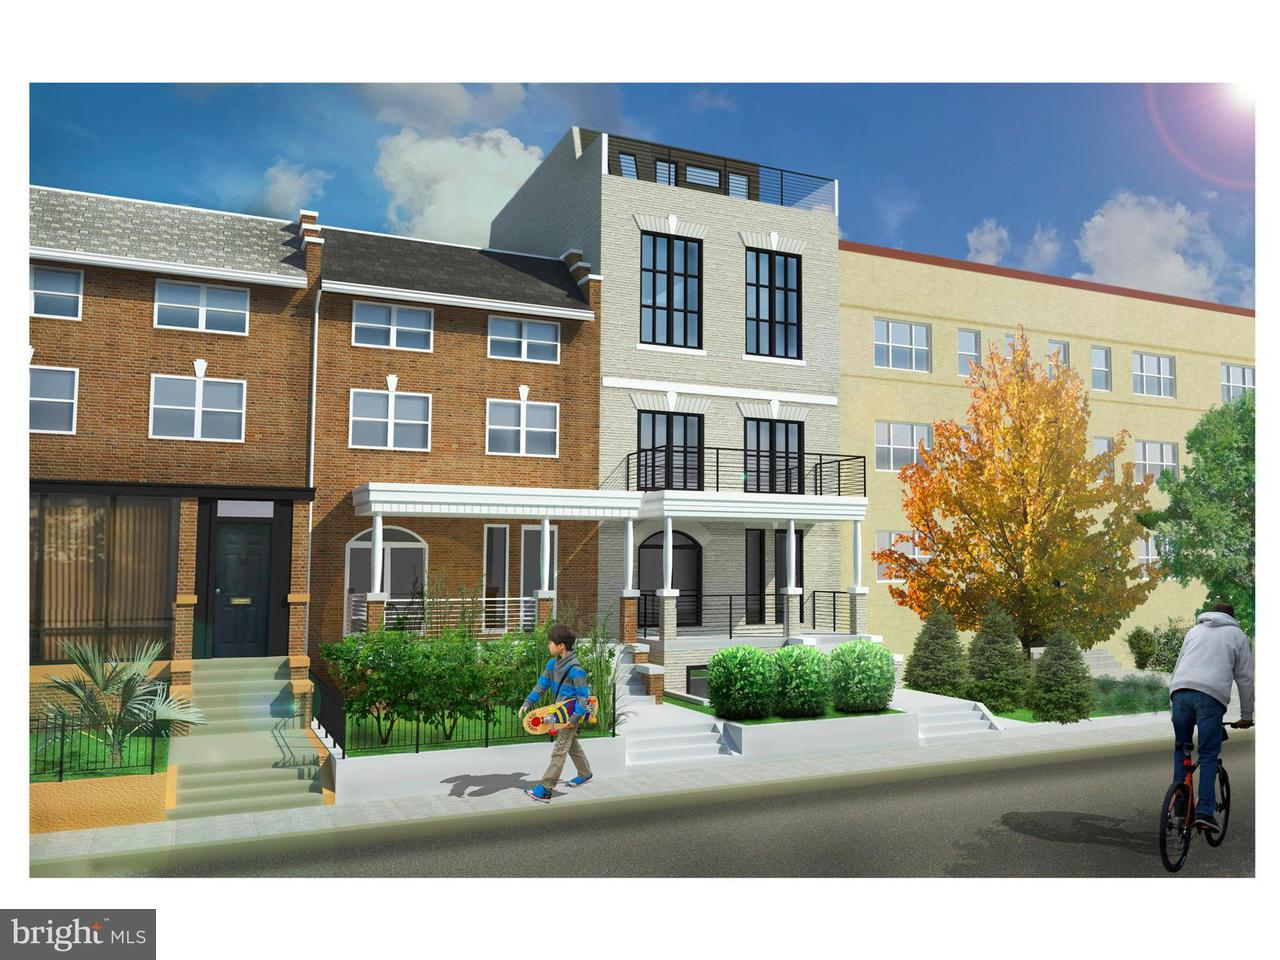 Townhouse for Sale at 1443 Euclid St Nw 1443 Euclid St Nw Washington, District Of Columbia 20009 United States